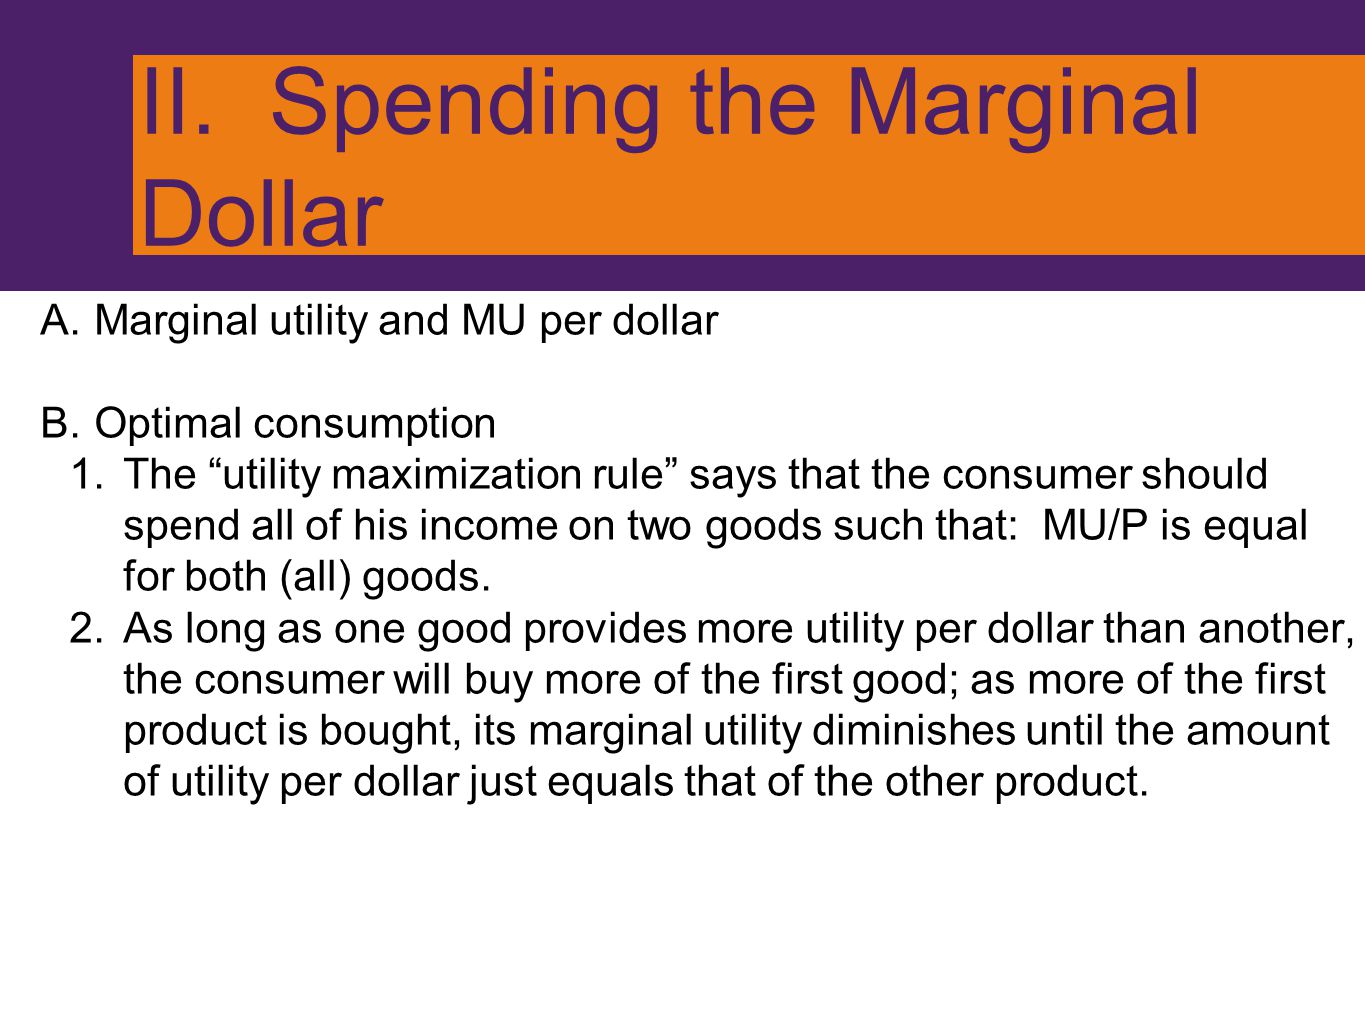 II. Spending the Marginal Dollar